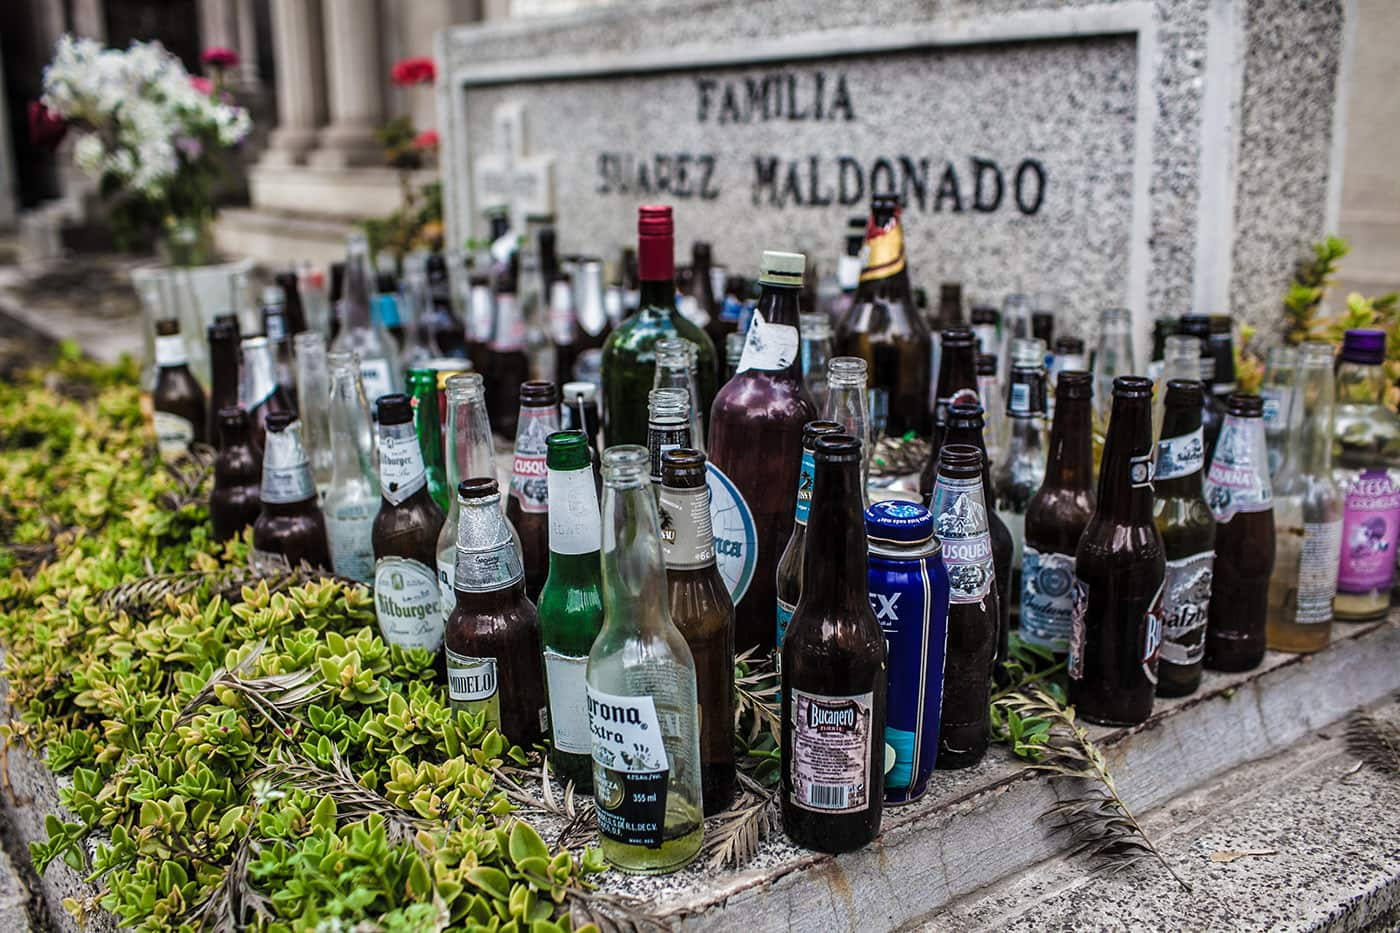 Cemetery in Santiago, Chile